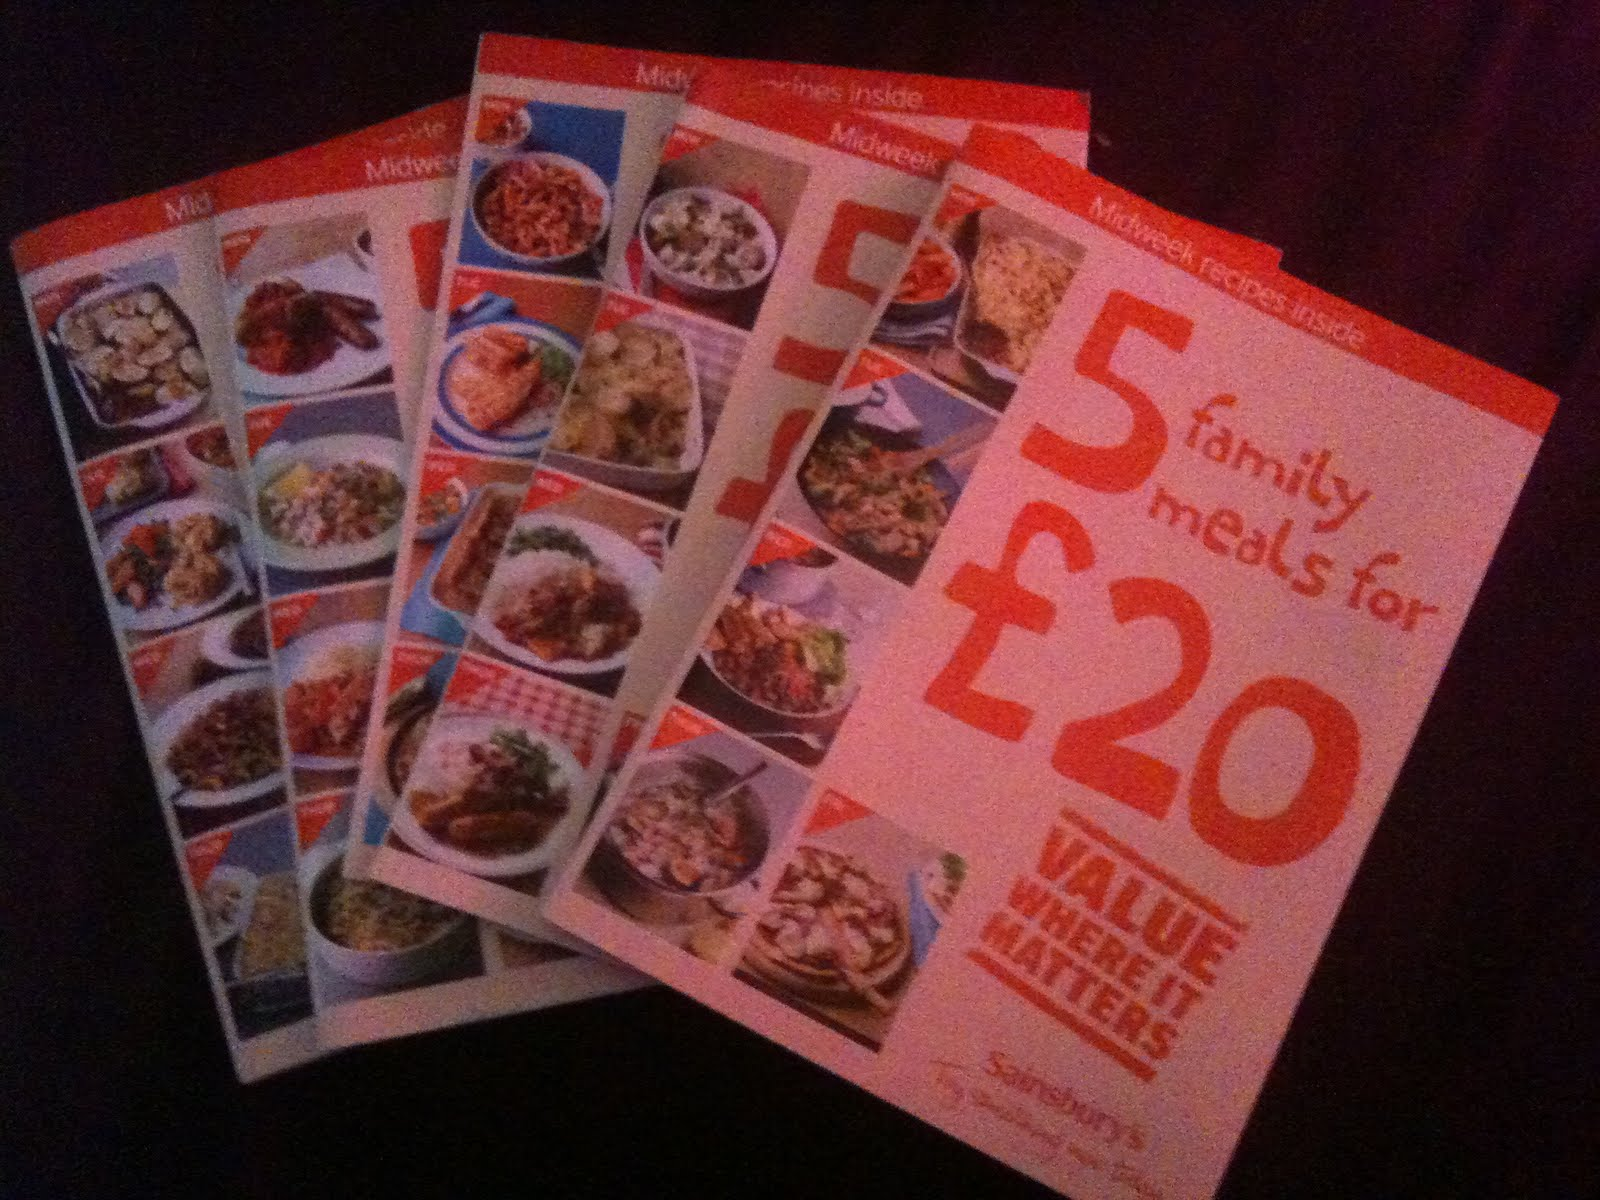 sainsbury's recipe cards  meal plans  rosa bello